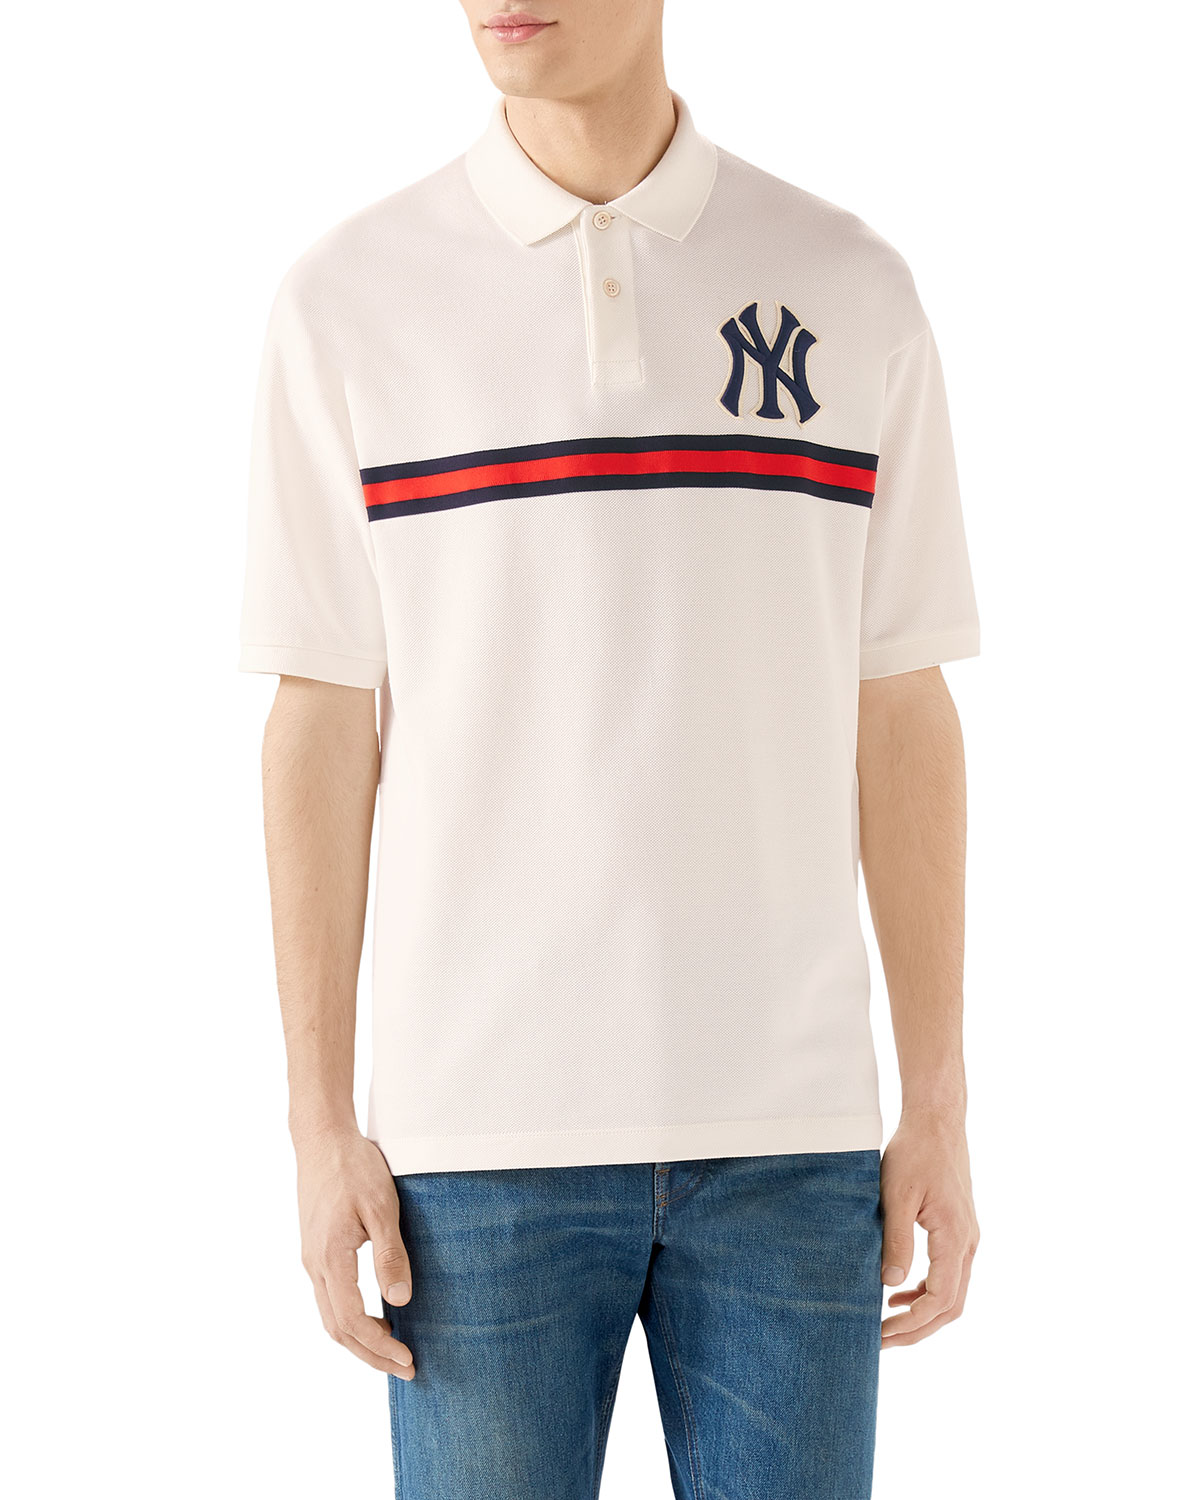 Gucci Men s NY Yankees MLB Polo Shirt with Logo Applique  726dac28225